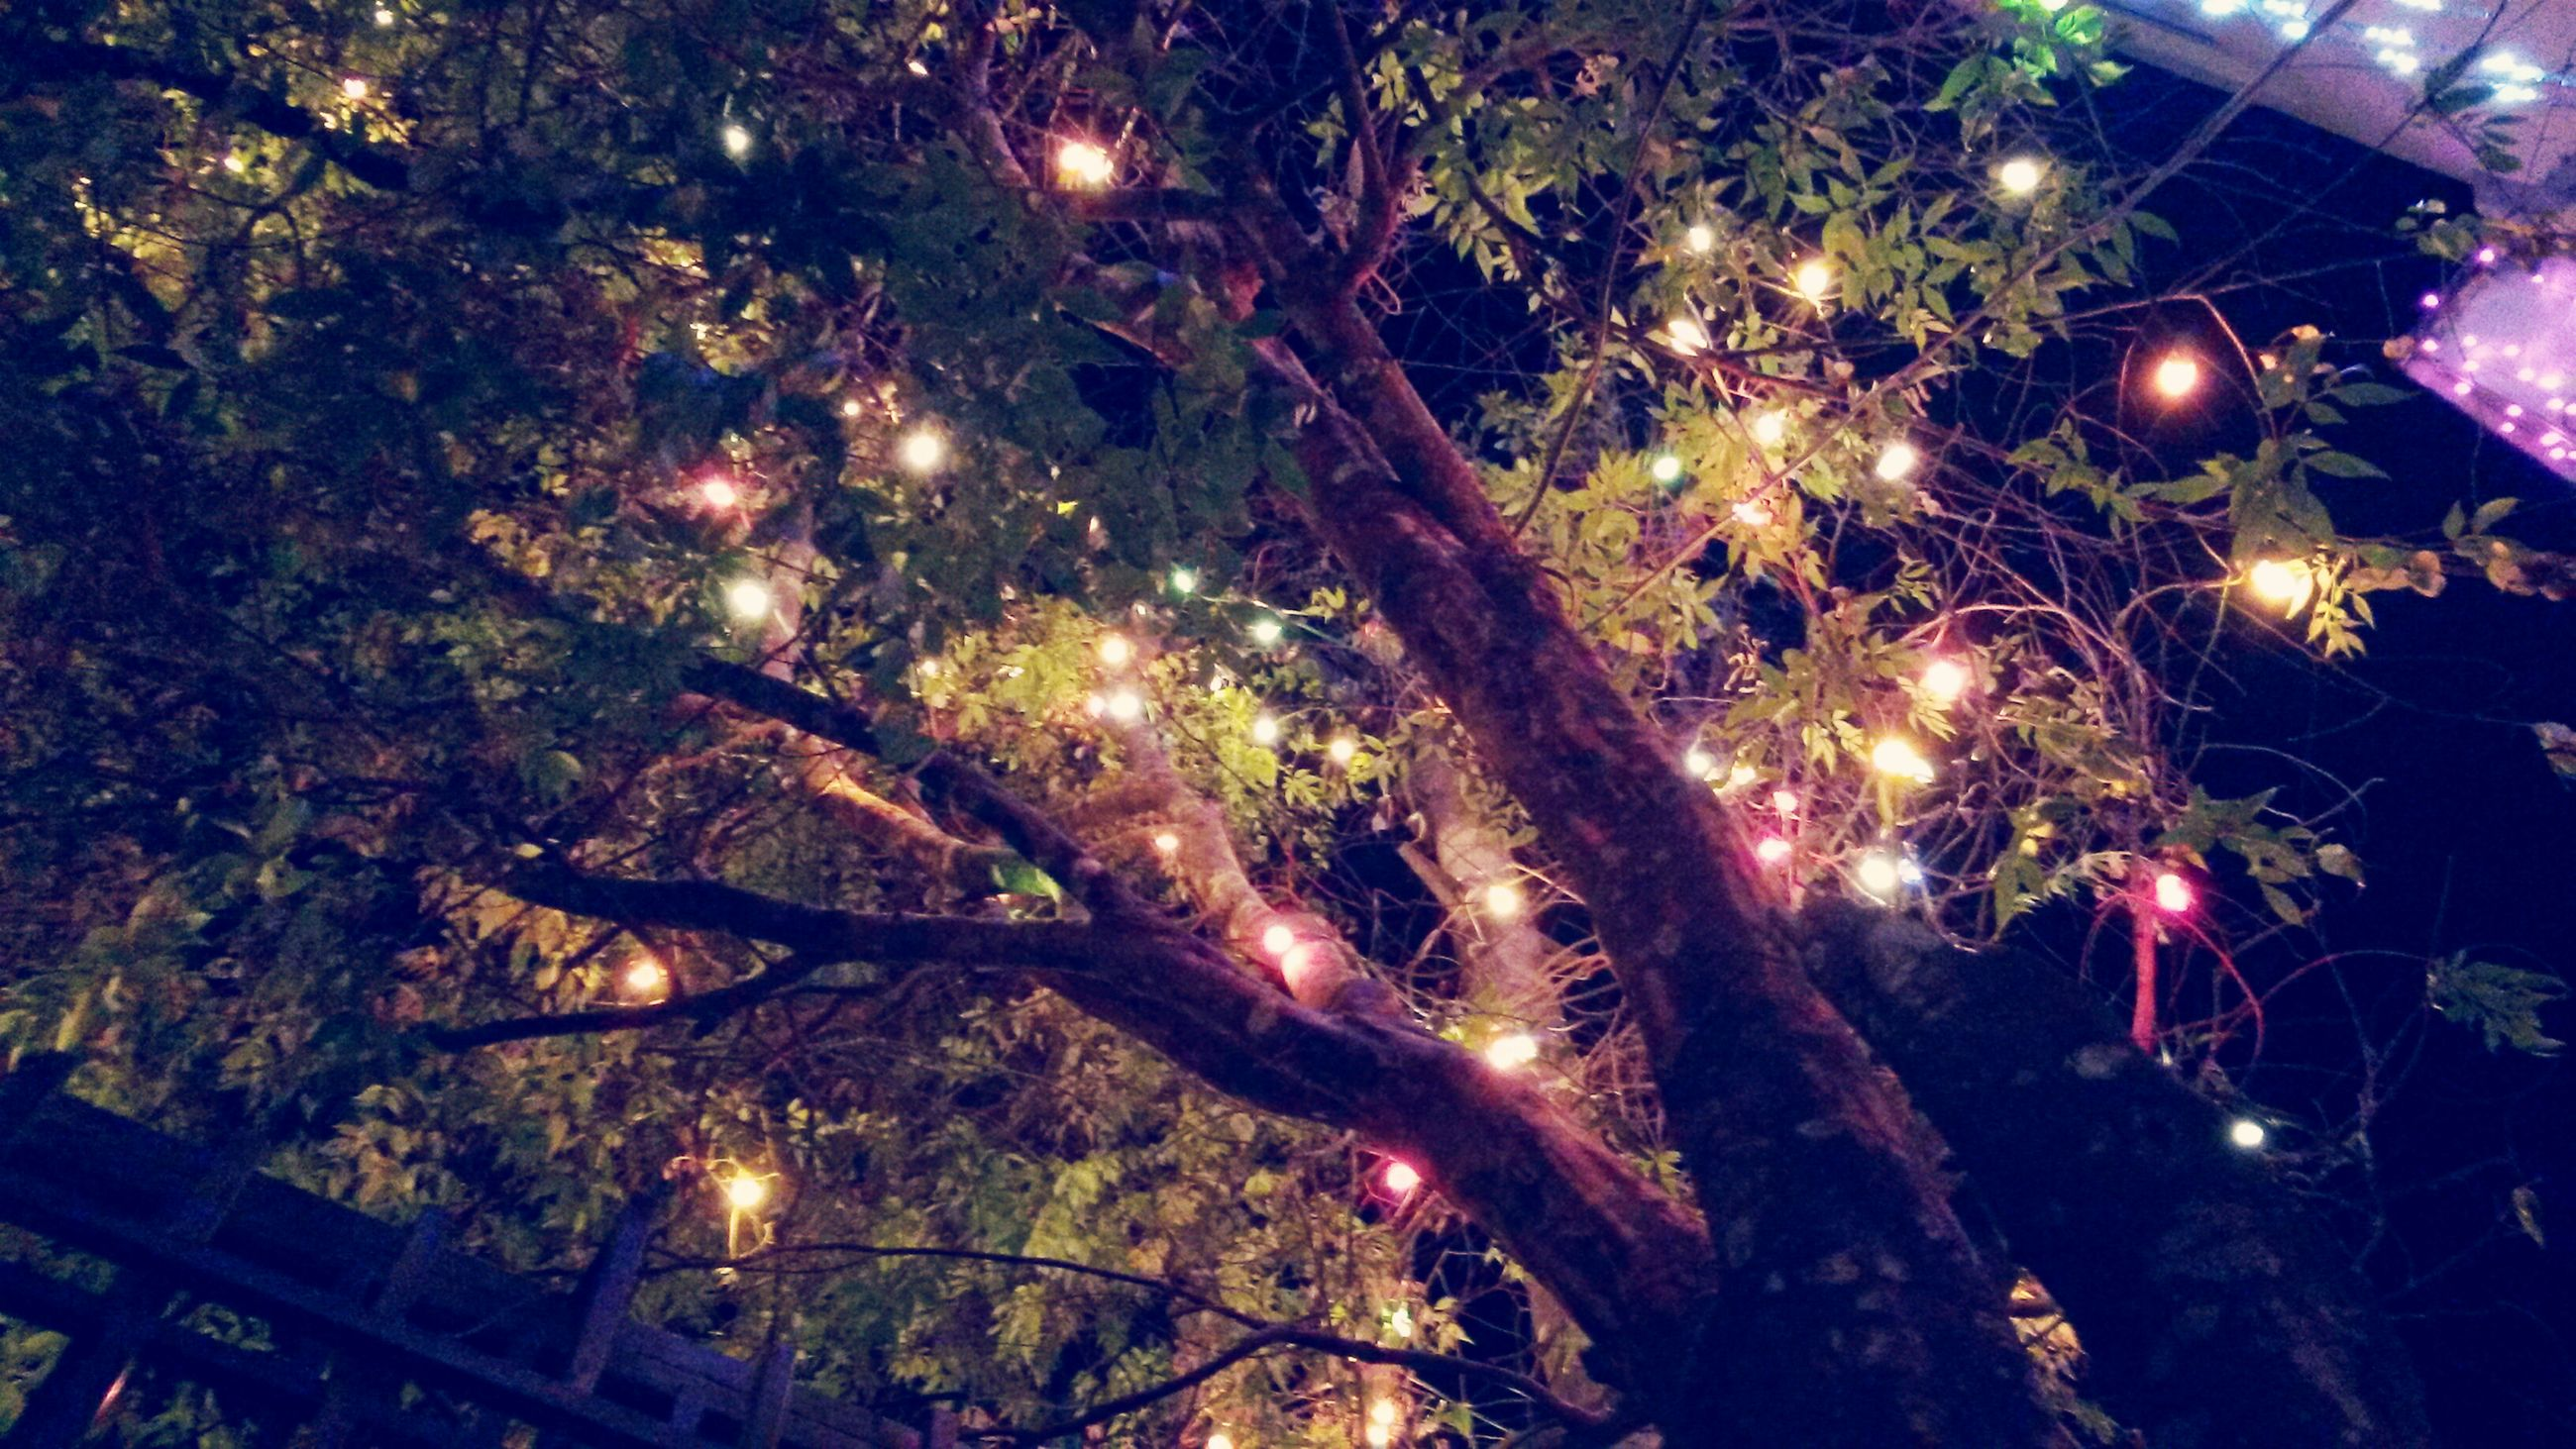 tree, low angle view, illuminated, night, branch, lighting equipment, celebration, growth, glowing, outdoors, sky, street light, nature, light - natural phenomenon, no people, lens flare, firework - man made object, beauty in nature, silhouette, hanging